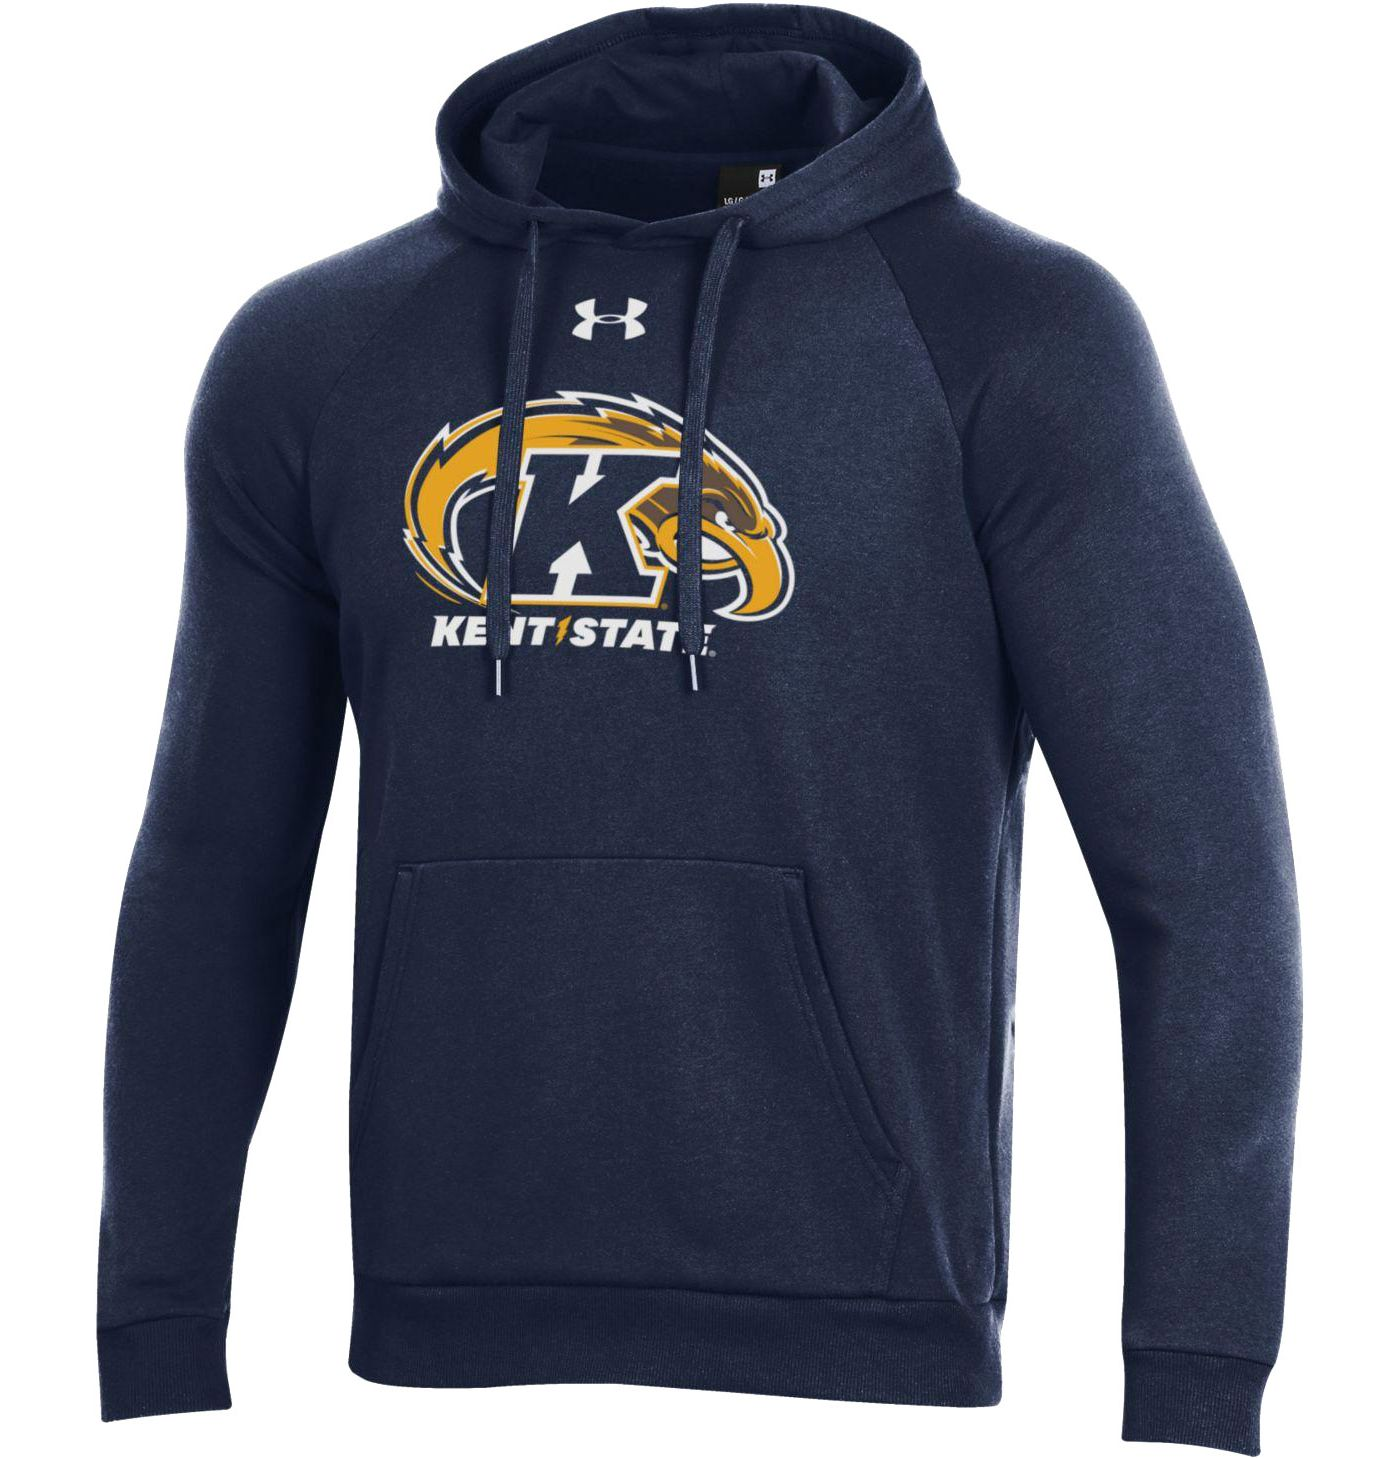 Under Armour Men's Kent State Golden Flashes Navy Blue All Day Hoodie